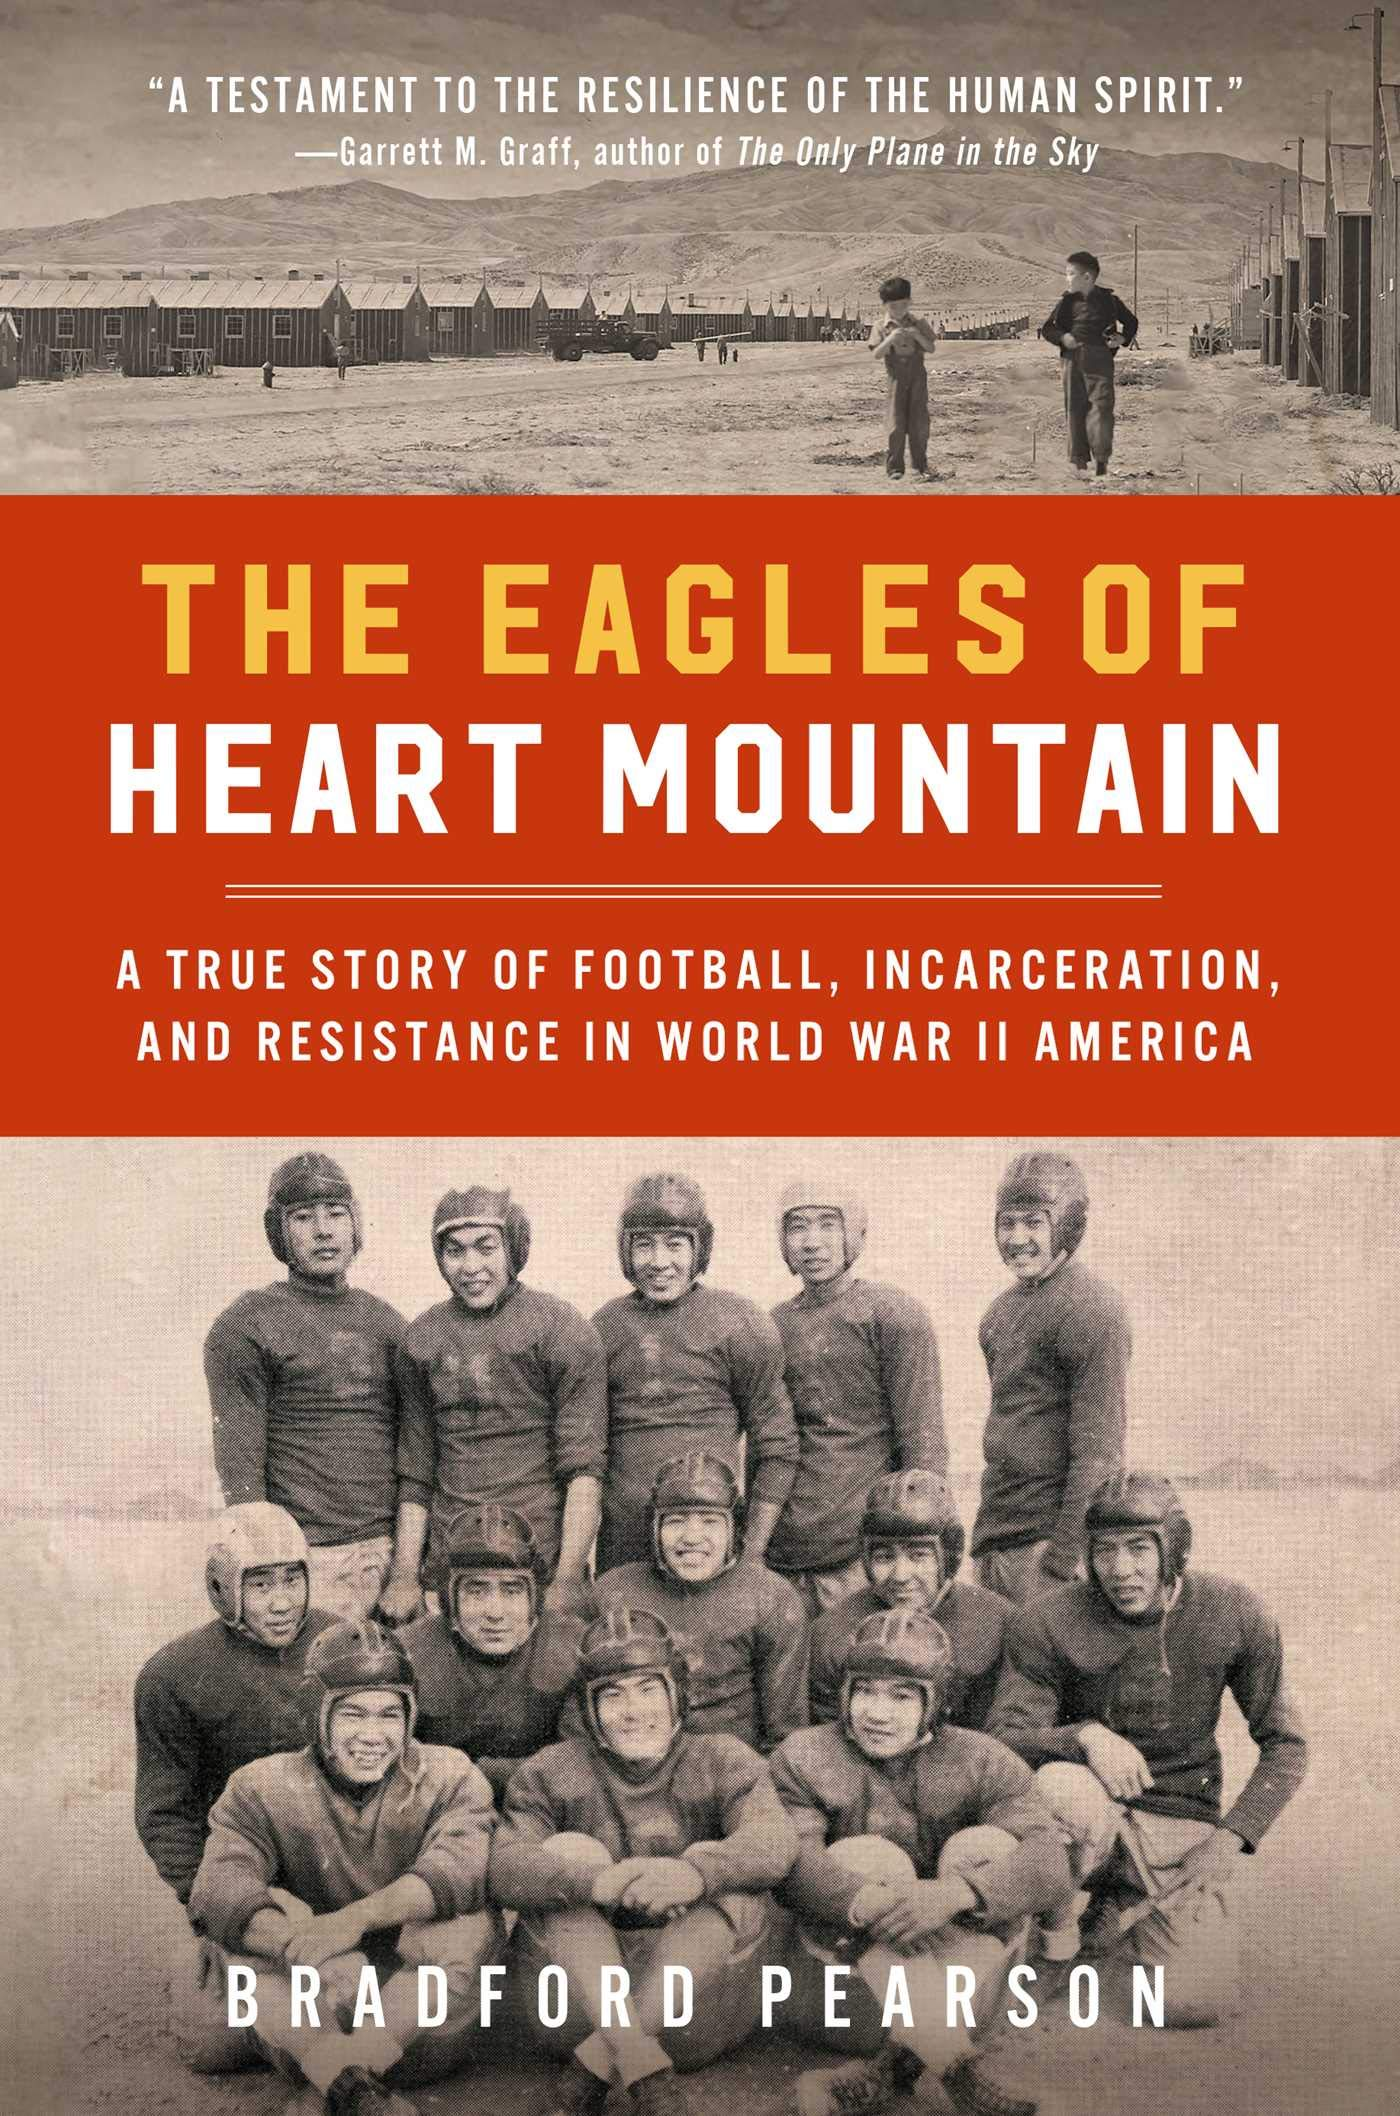 Book Cover: The Eagles of Heart Mountain: A True Story of Football, Incarceration, and Resistance in World War II America